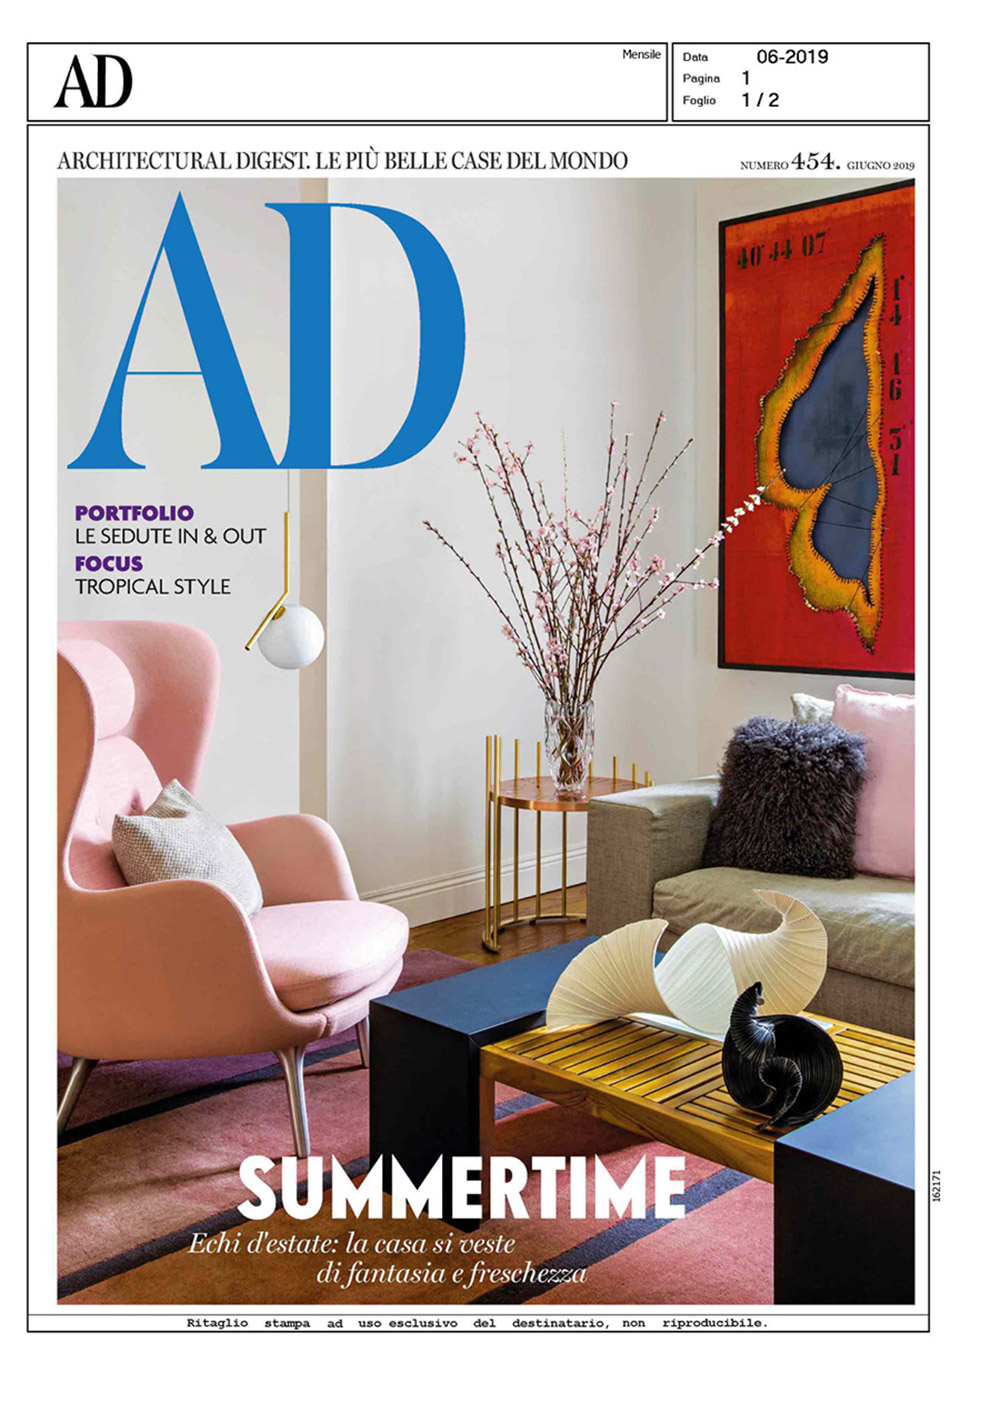 AD Architectural Digest June 2019